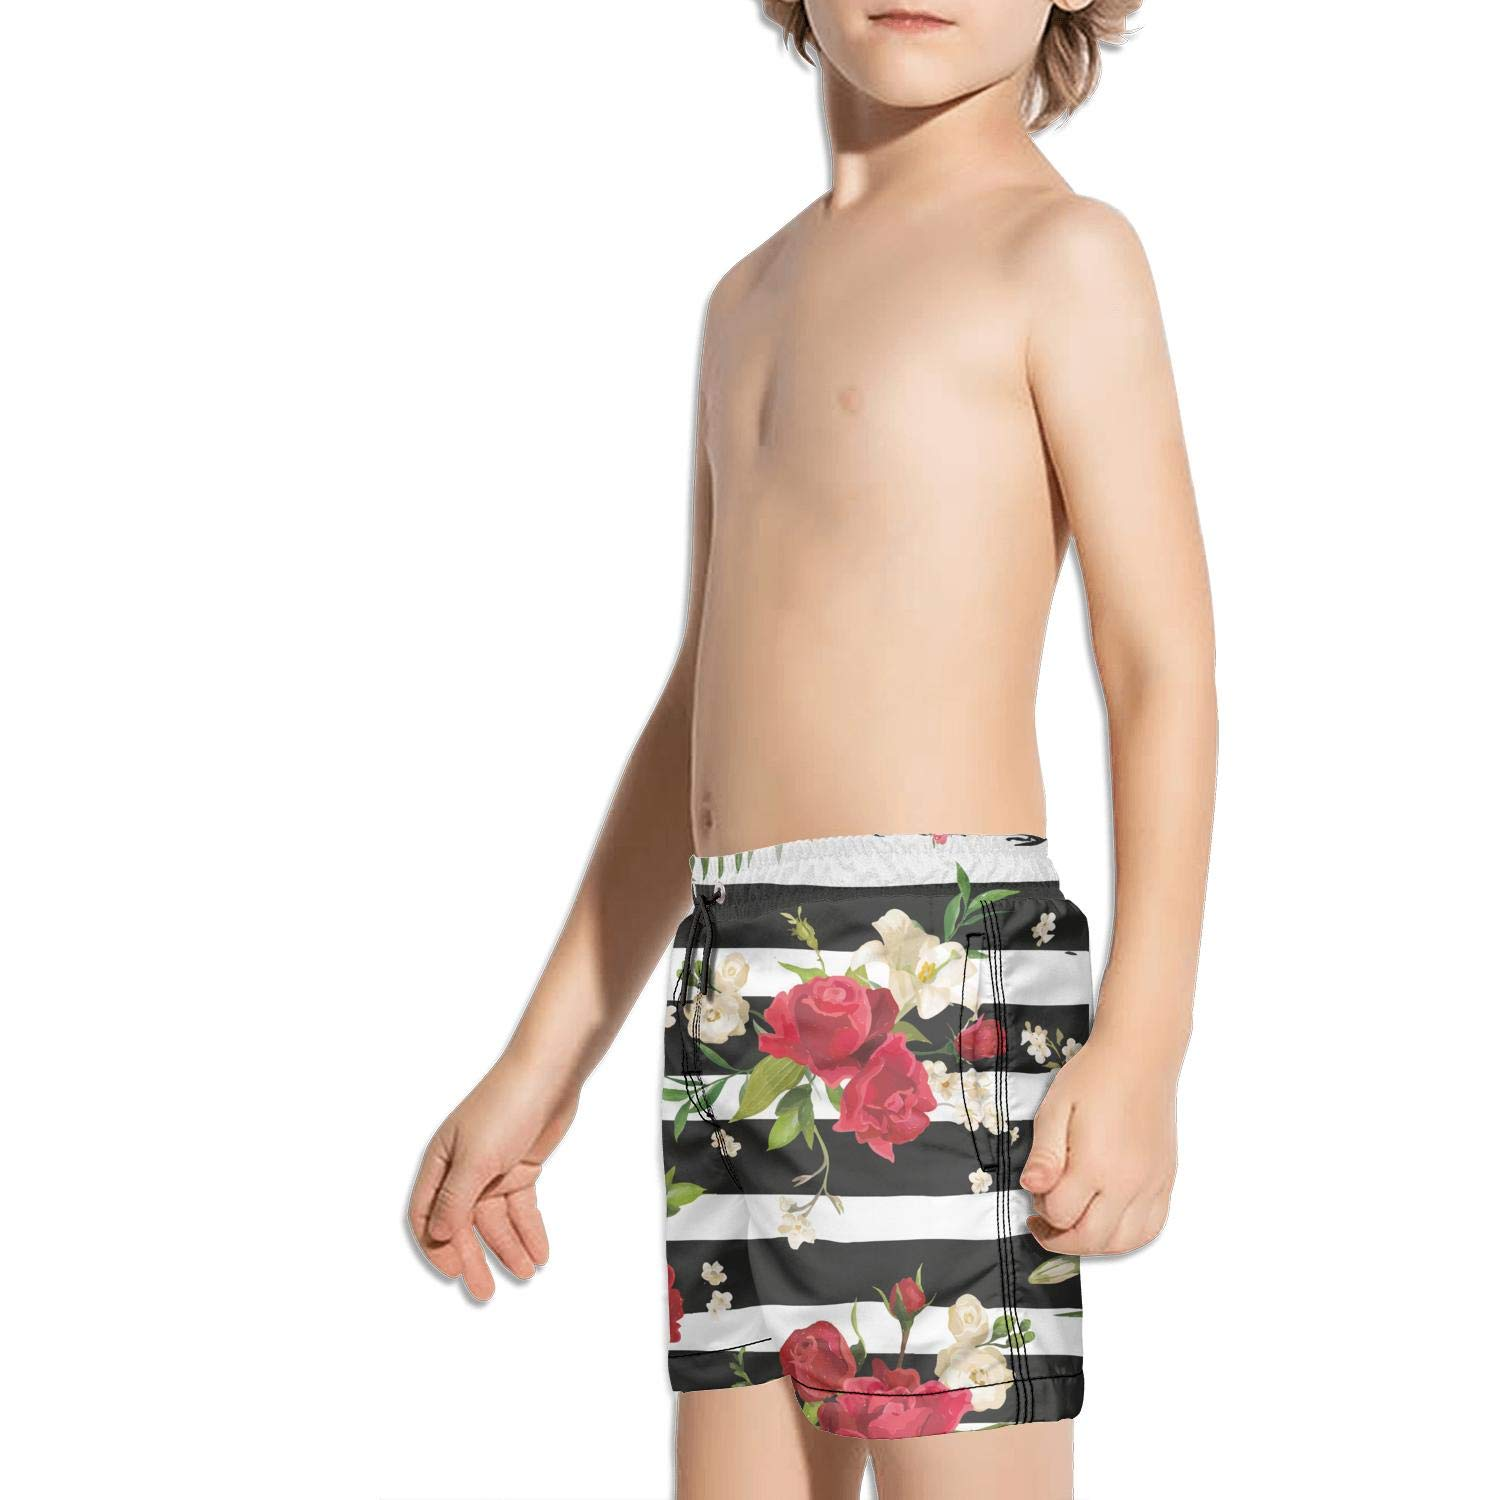 Ouxioaz Boys Swim Trunk Green Wild Lily Flower Beach Board Shorts